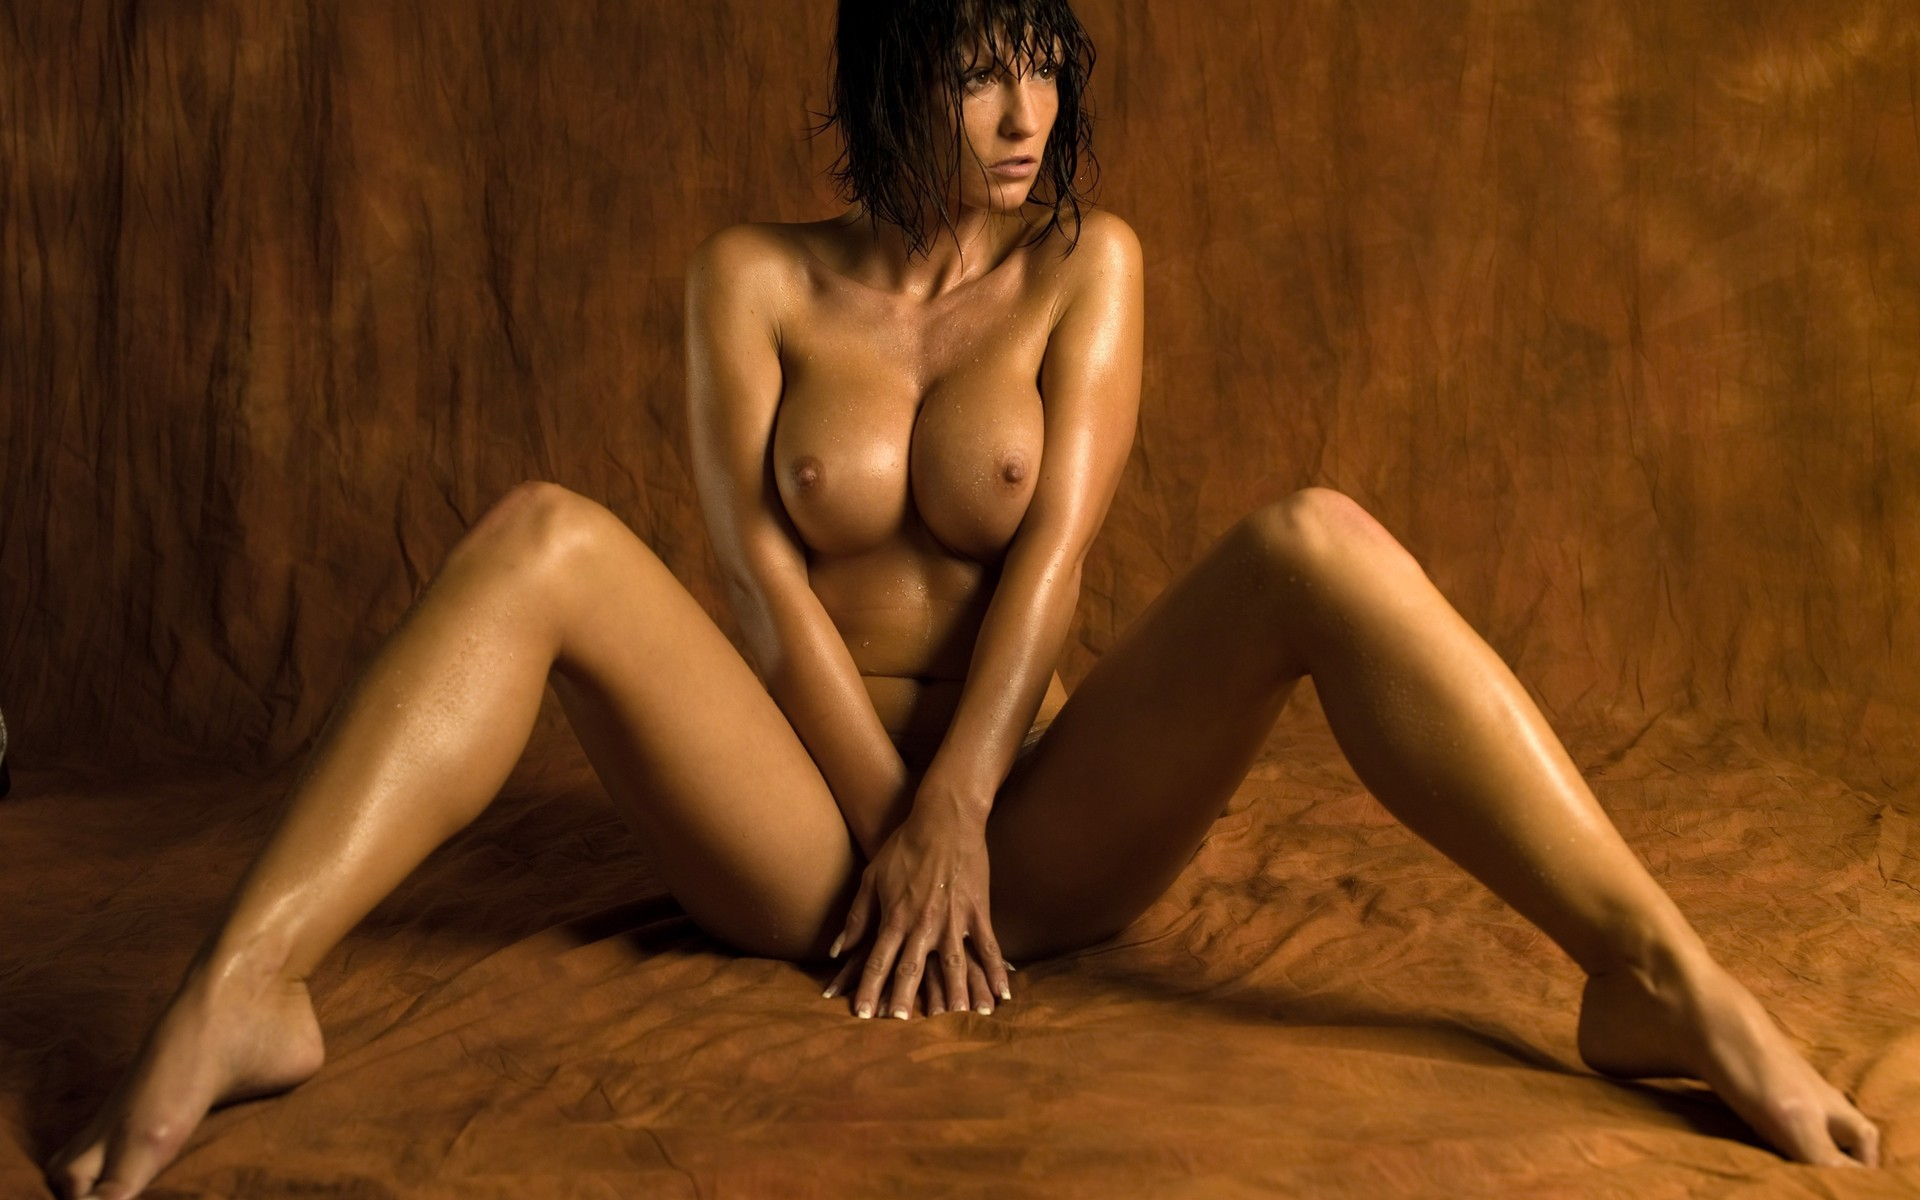 Free desktop wallpaper background of nude women sorry, that